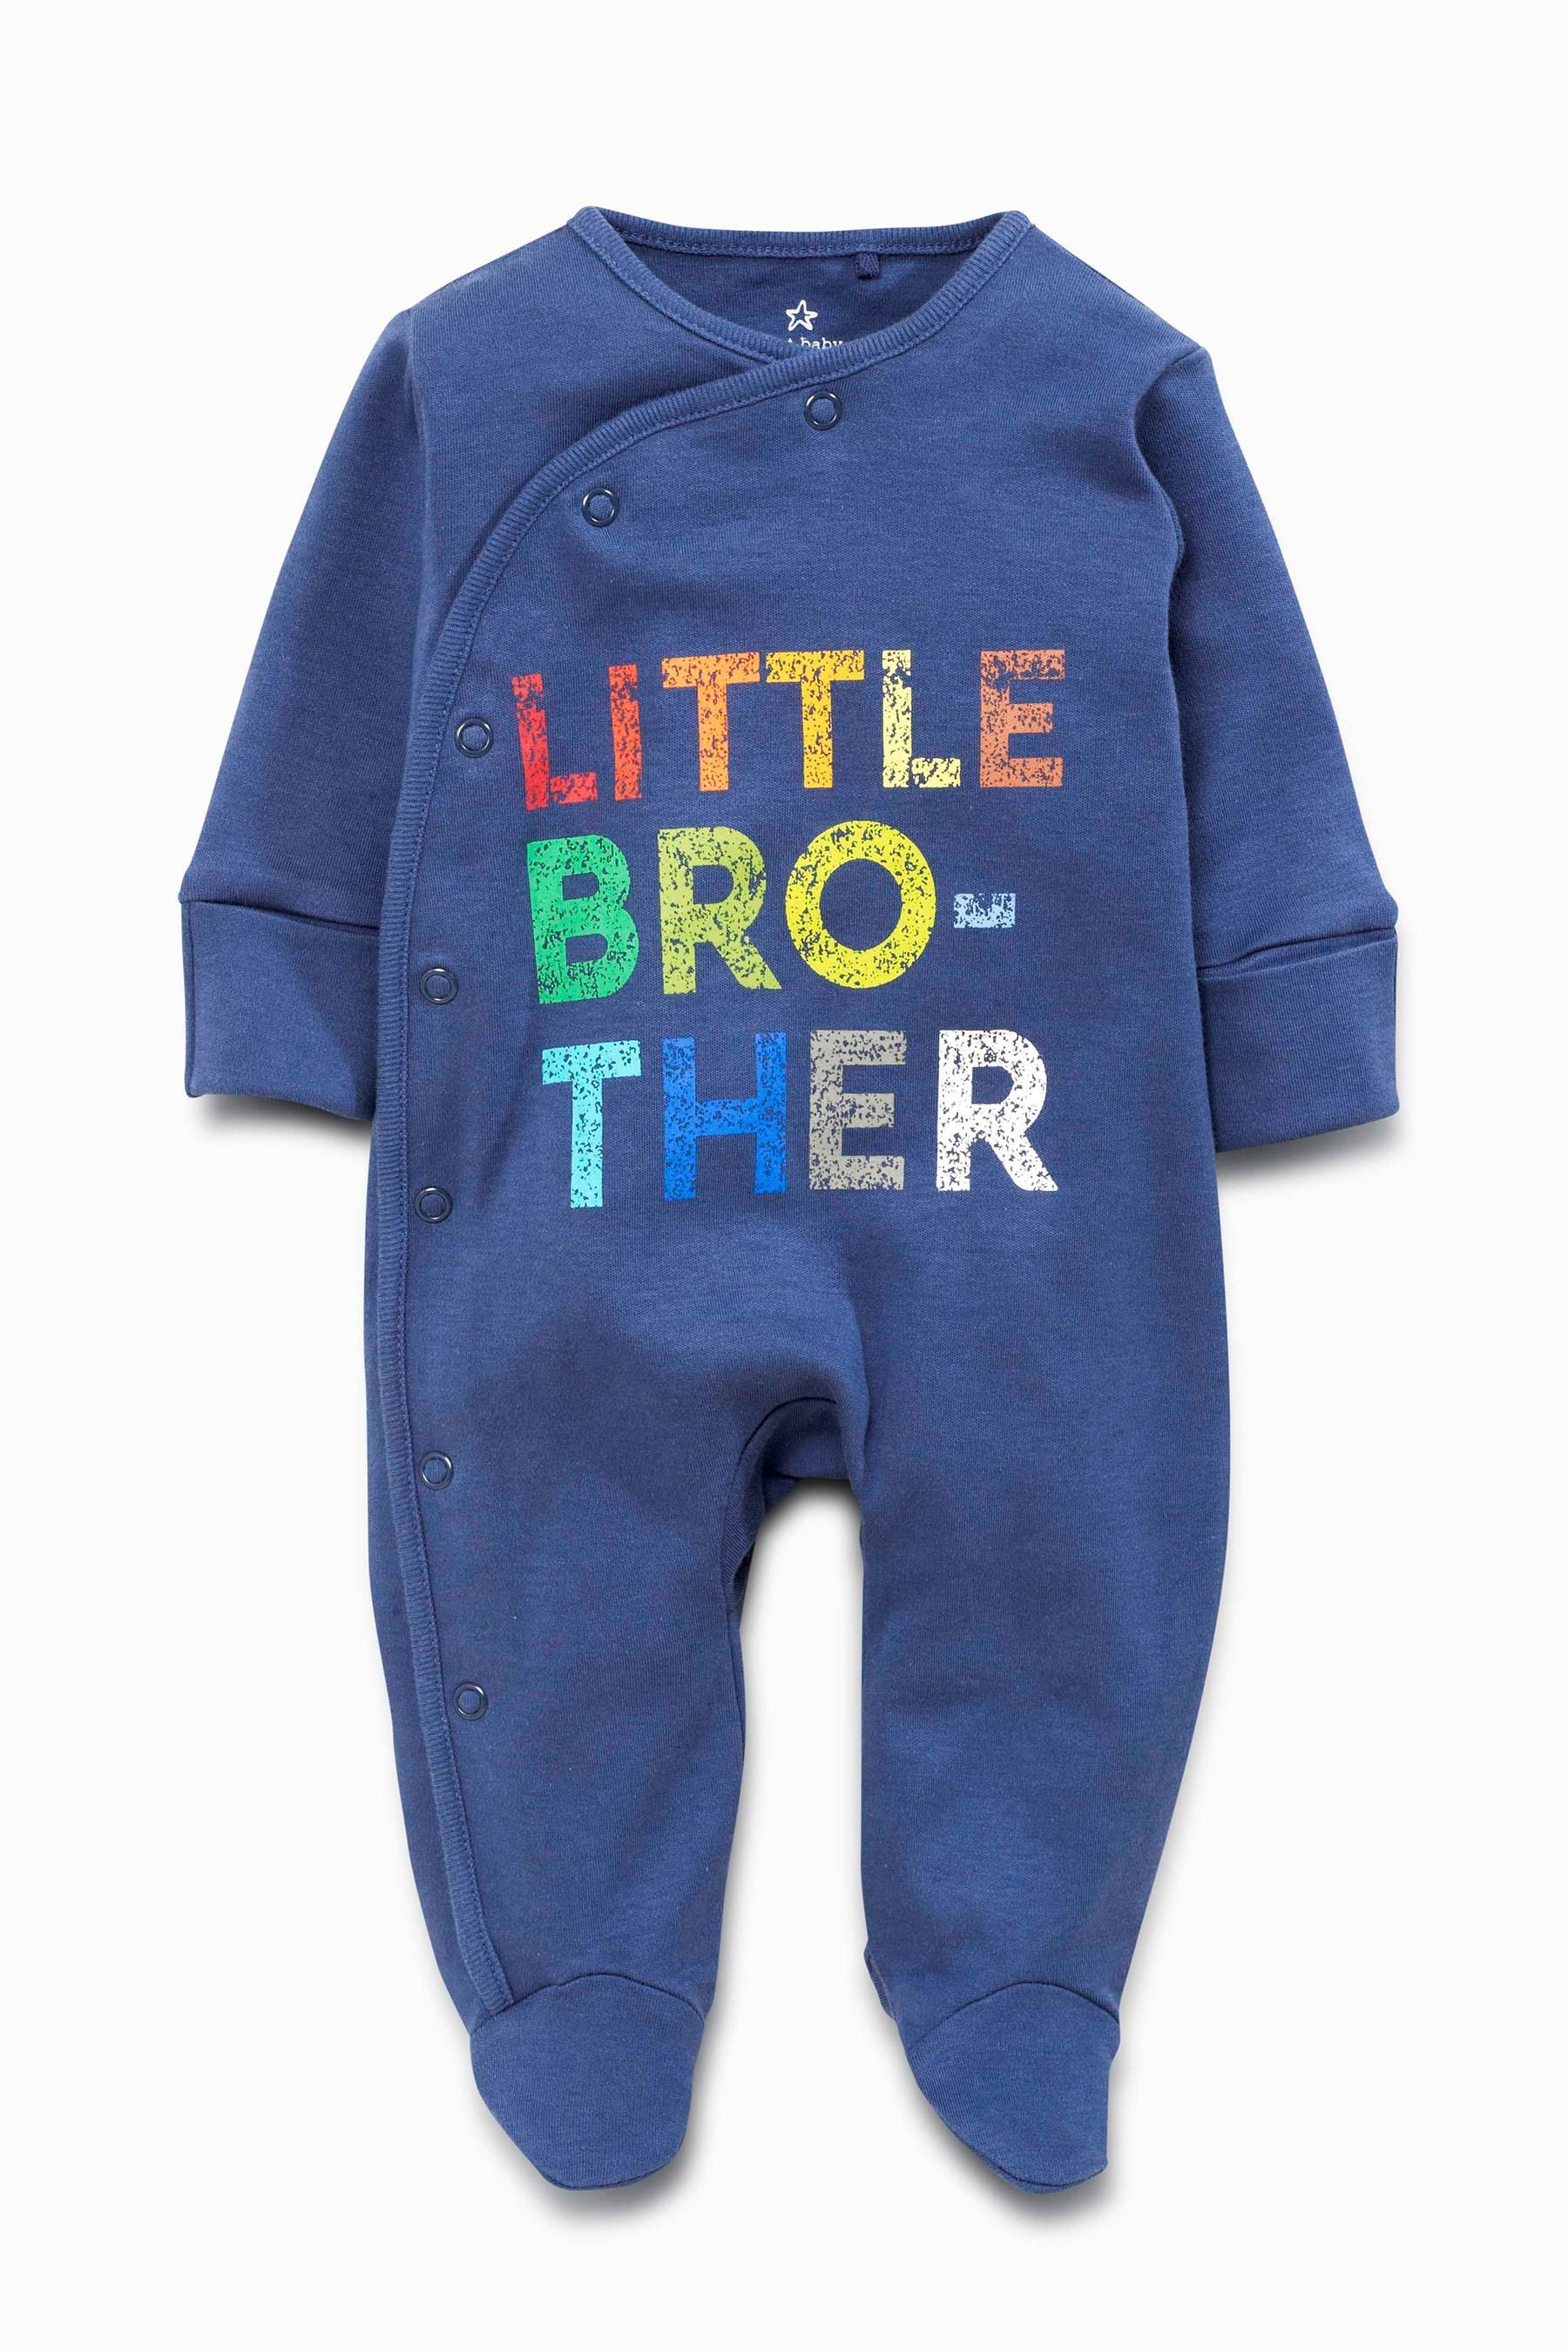 Buy Blue Brother Sleepsuit 0 18mths from the Next UK online shop